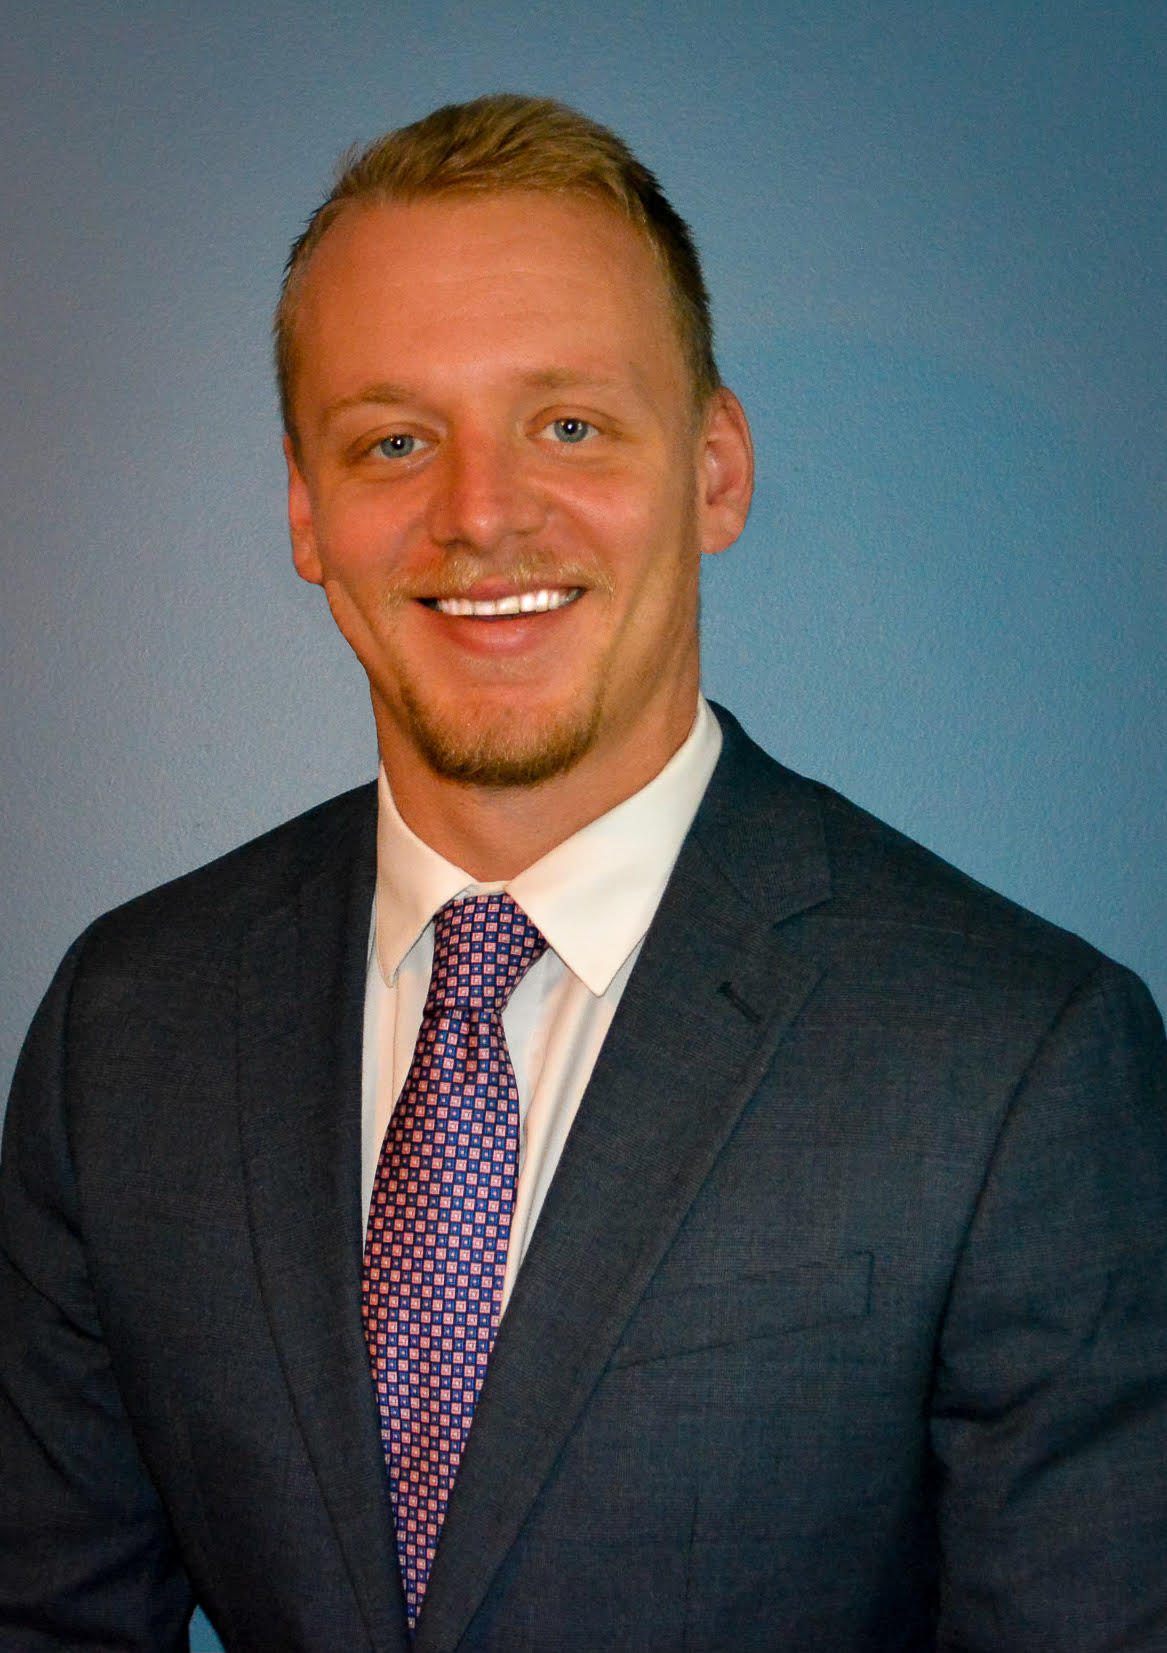 Lane Zabawa  Owner/Attorney - The son of an entrepreneur, I started my first business at 17. From there, I made stops at Cooley Law School and an Atlanta based corporate law office, before founding Ventures Law Firm. Today I am able to follow my passion in helping others in both business and in life.